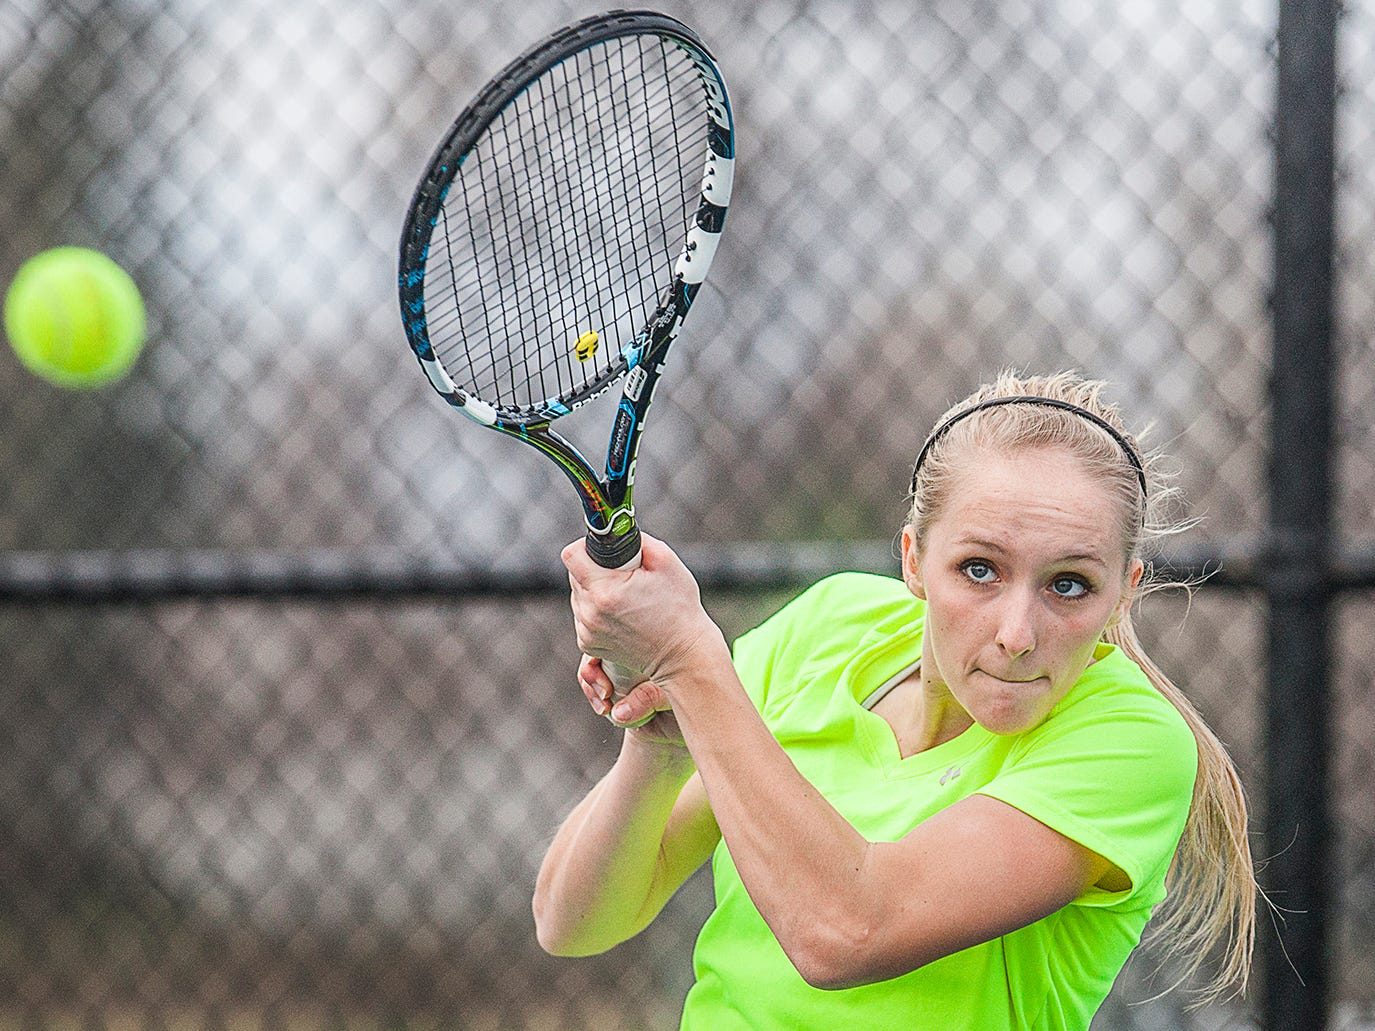 Rebecca Hollowell will lead Central into the postseason starting with a challenging Yorktown team.